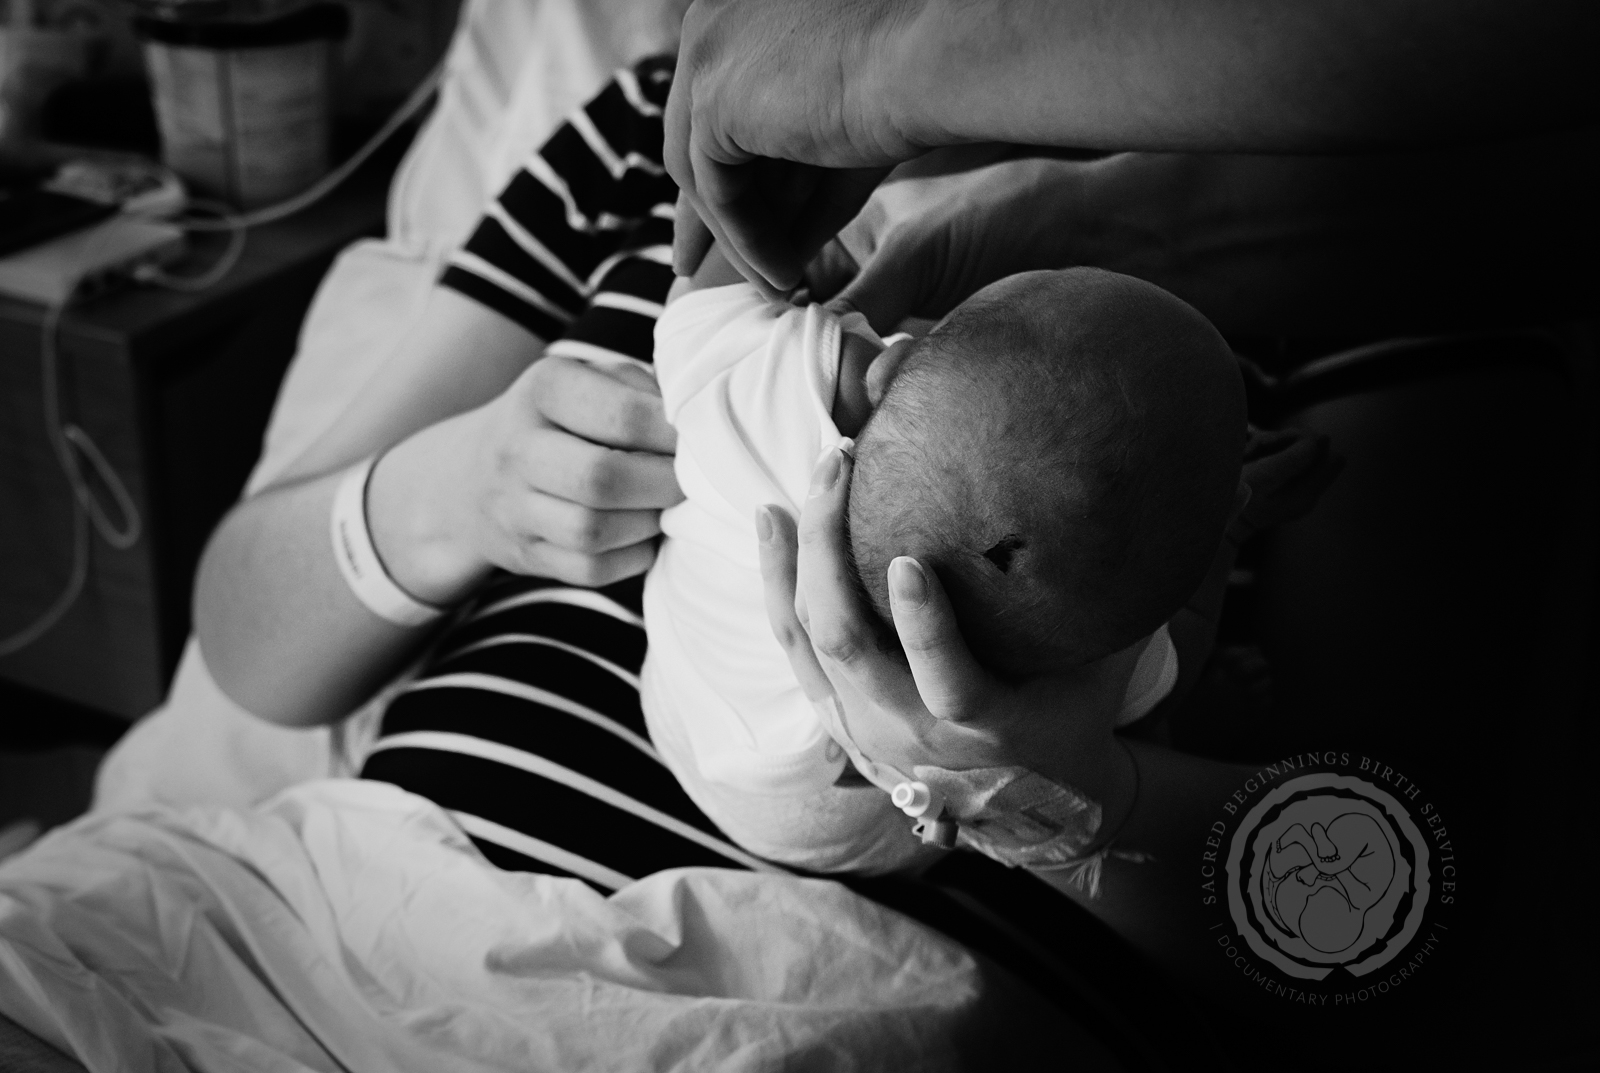 EVERY BABY HAS A STORY TO TELL. -